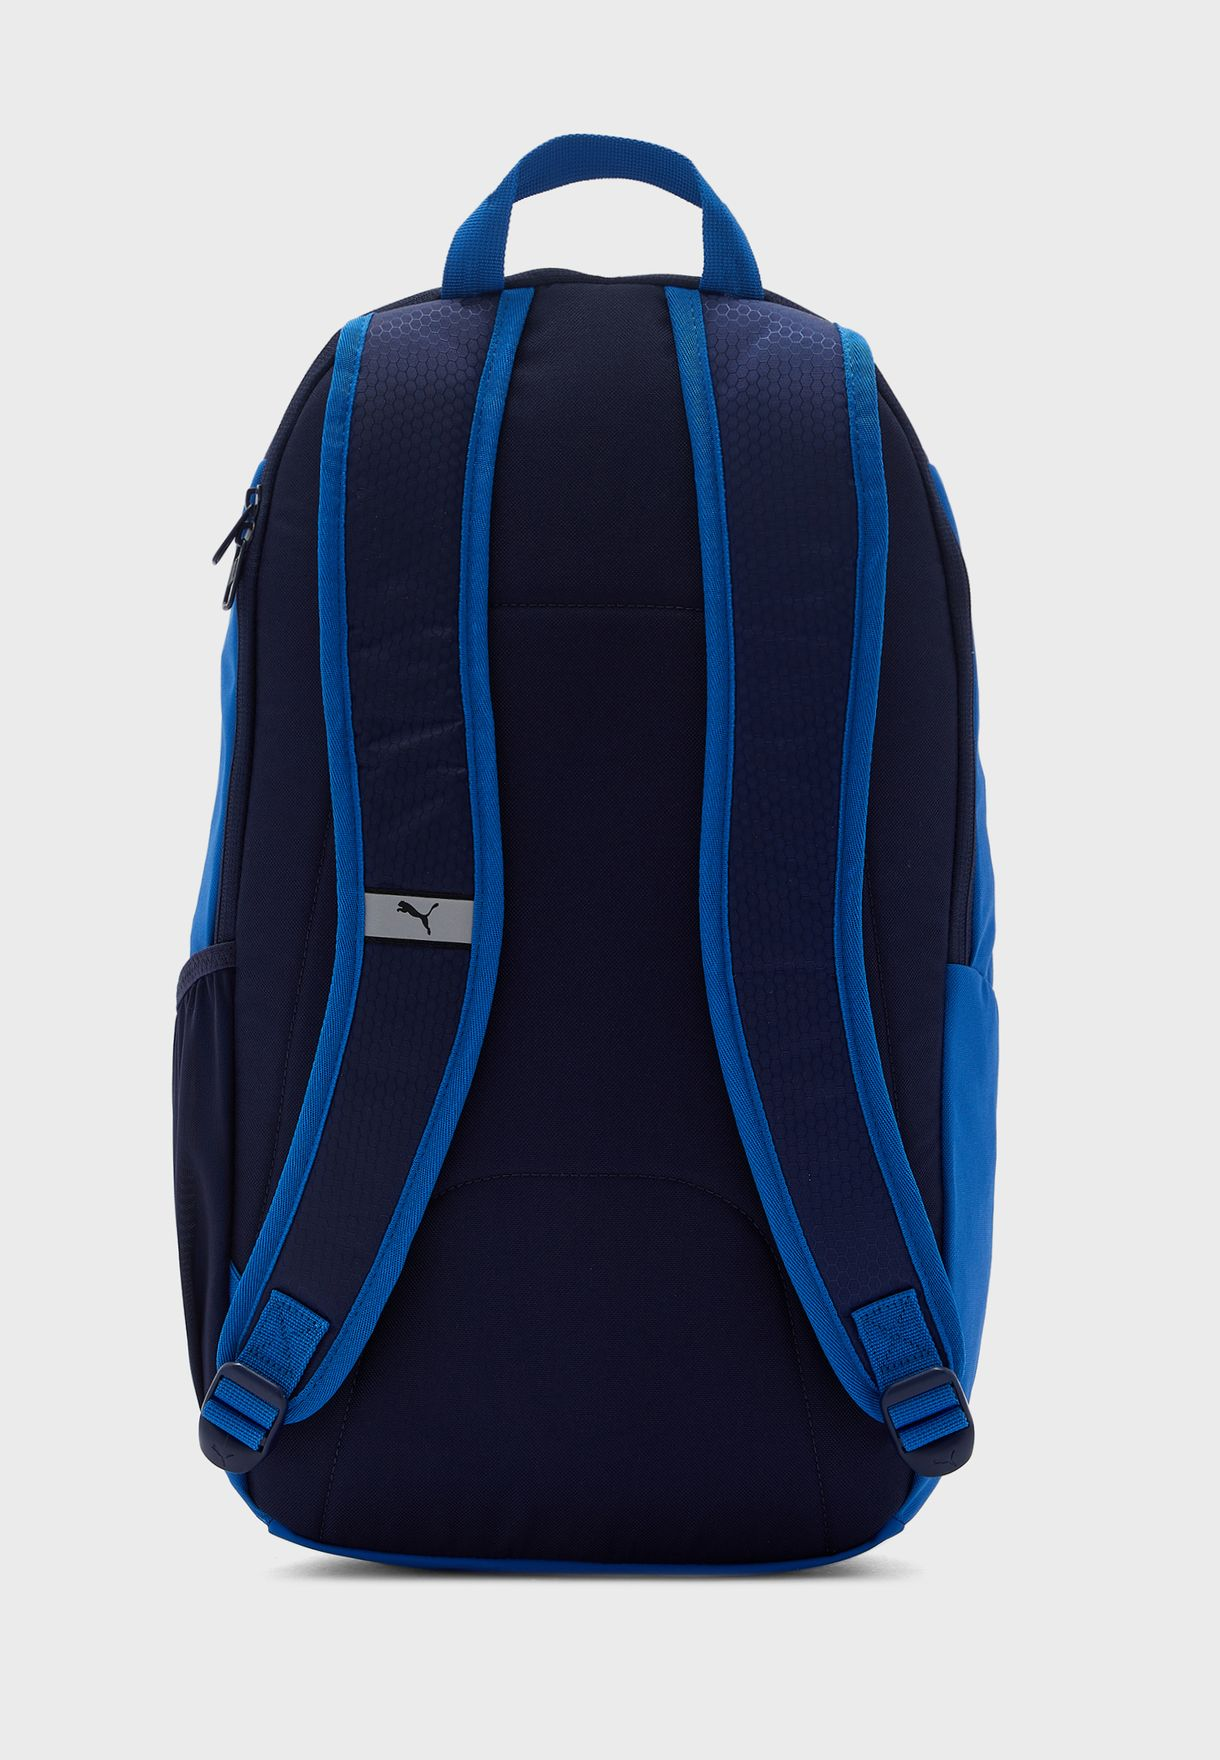 FIGC Final 21 Backpack